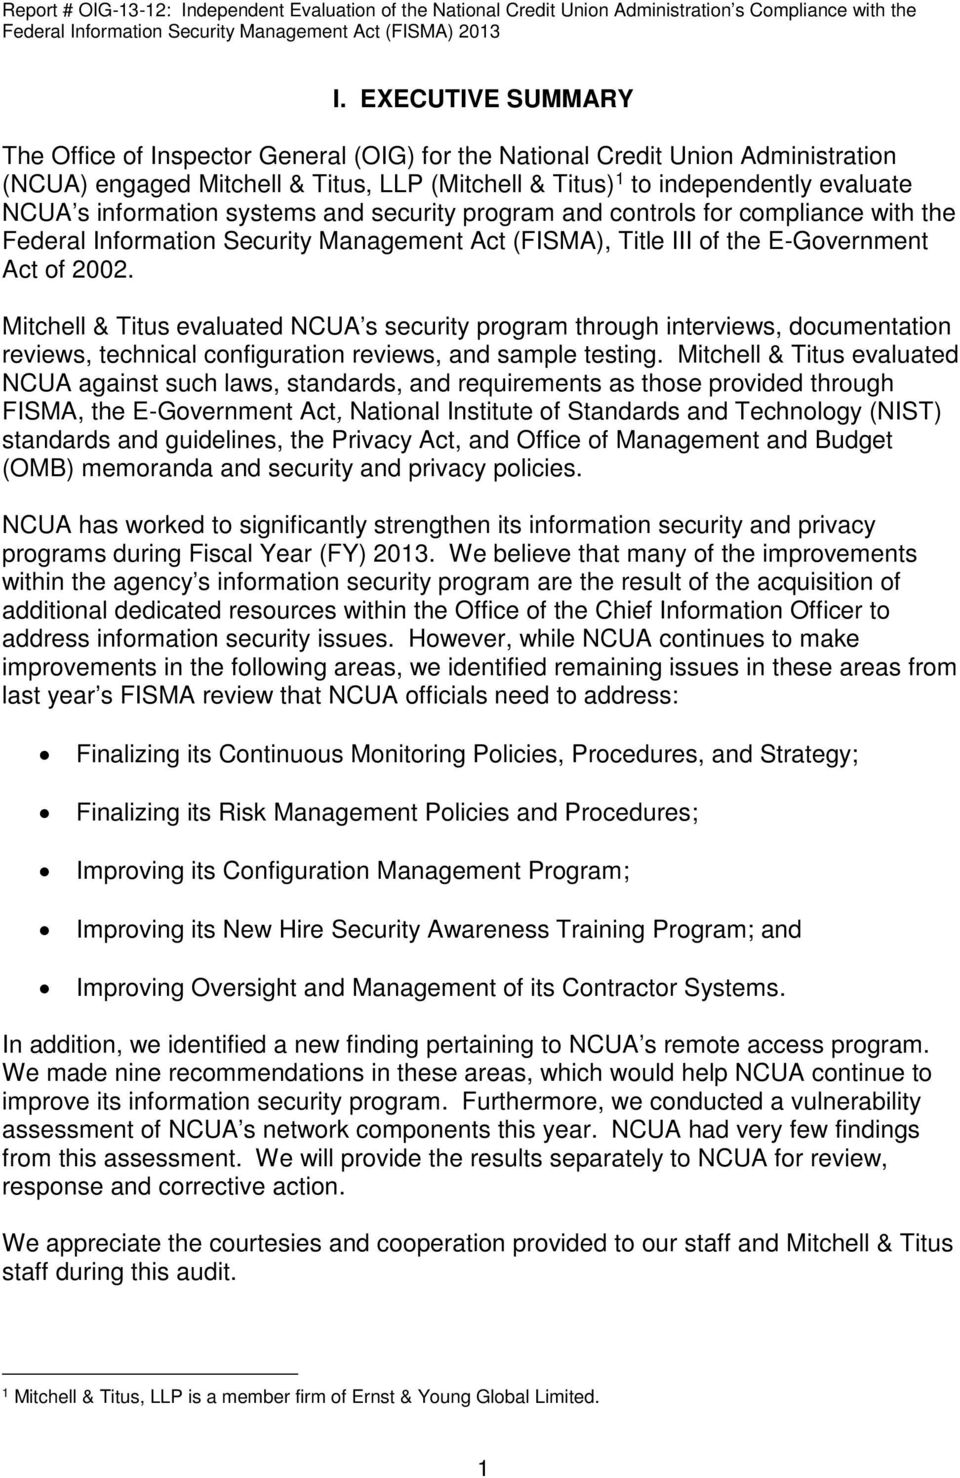 Mitchell & Titus evaluated NCUA s security program through interviews, documentation reviews, technical configuration reviews, and sample testing.